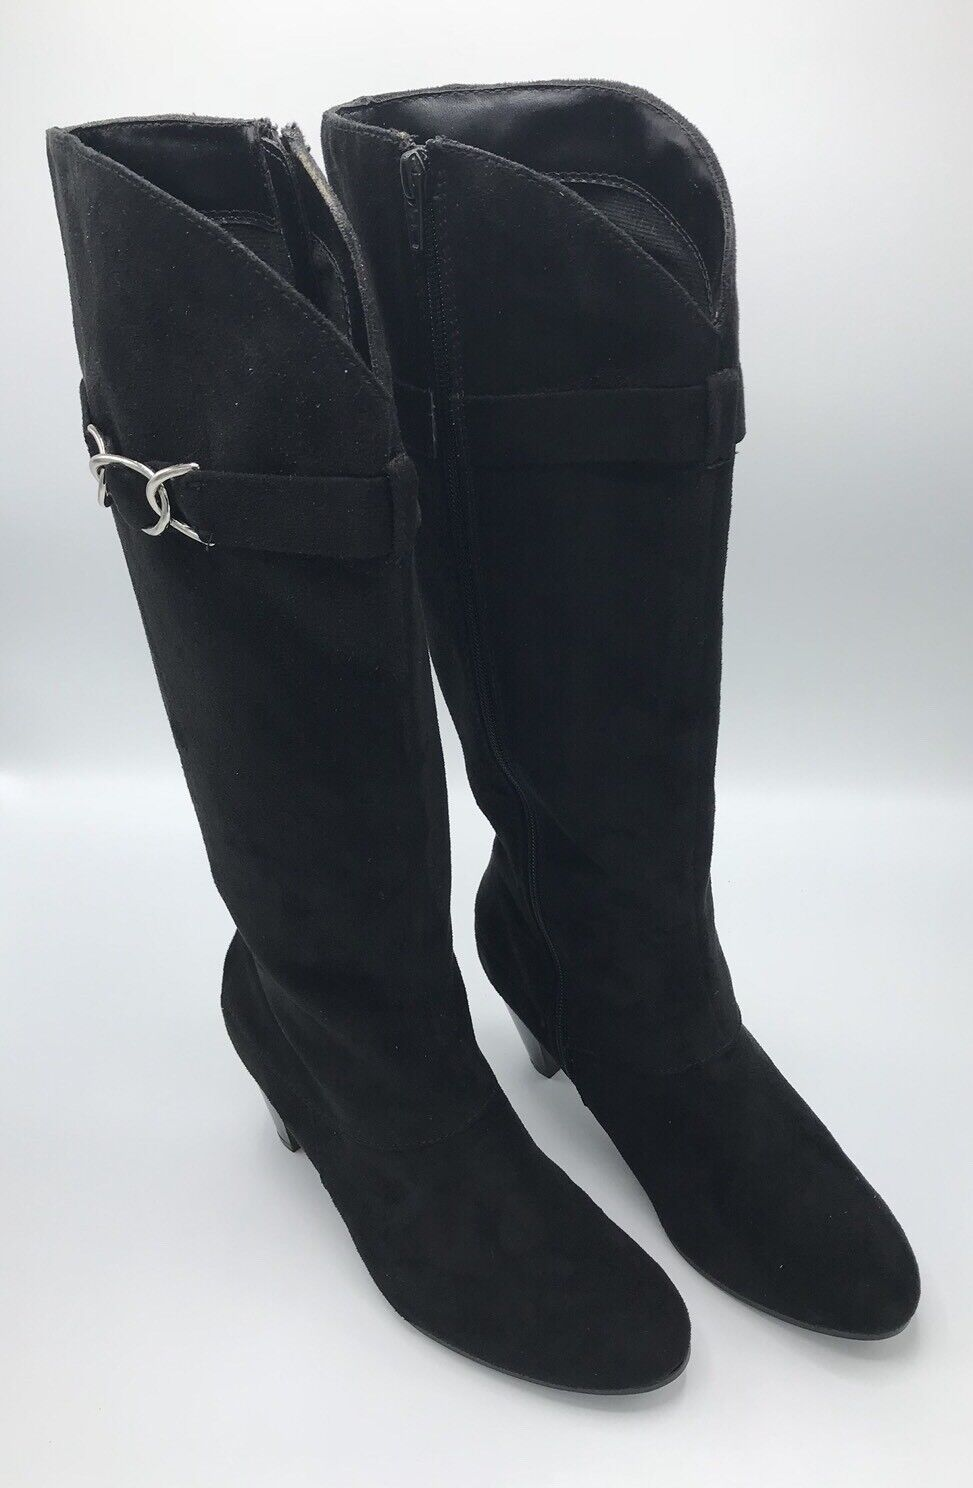 Predictions Women's Suede Black Boots Sz 7 W